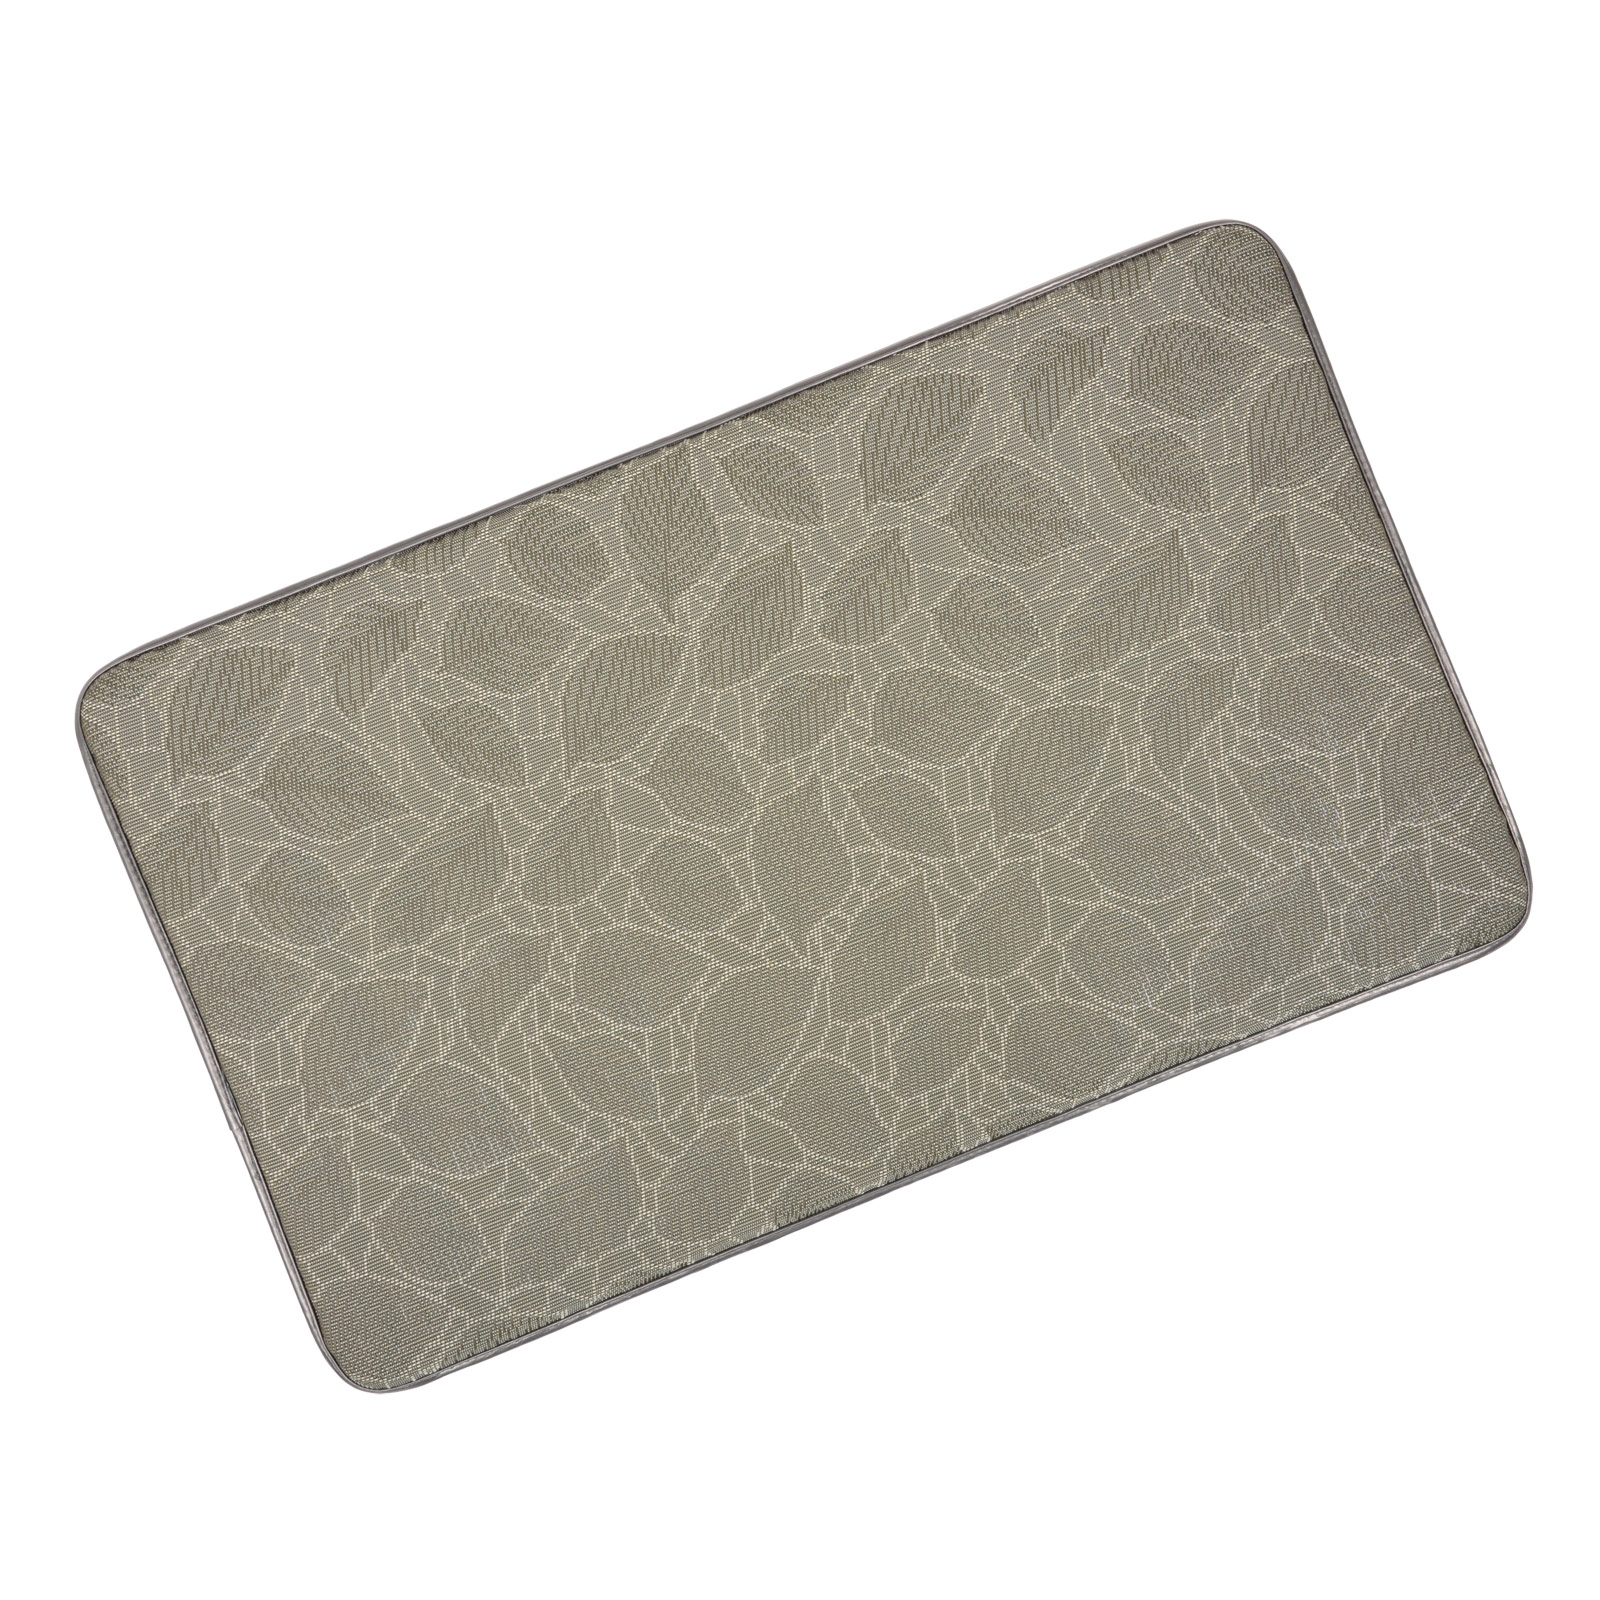 comfort kitchen mats top appliance brands memory foam anti fatigue stress home